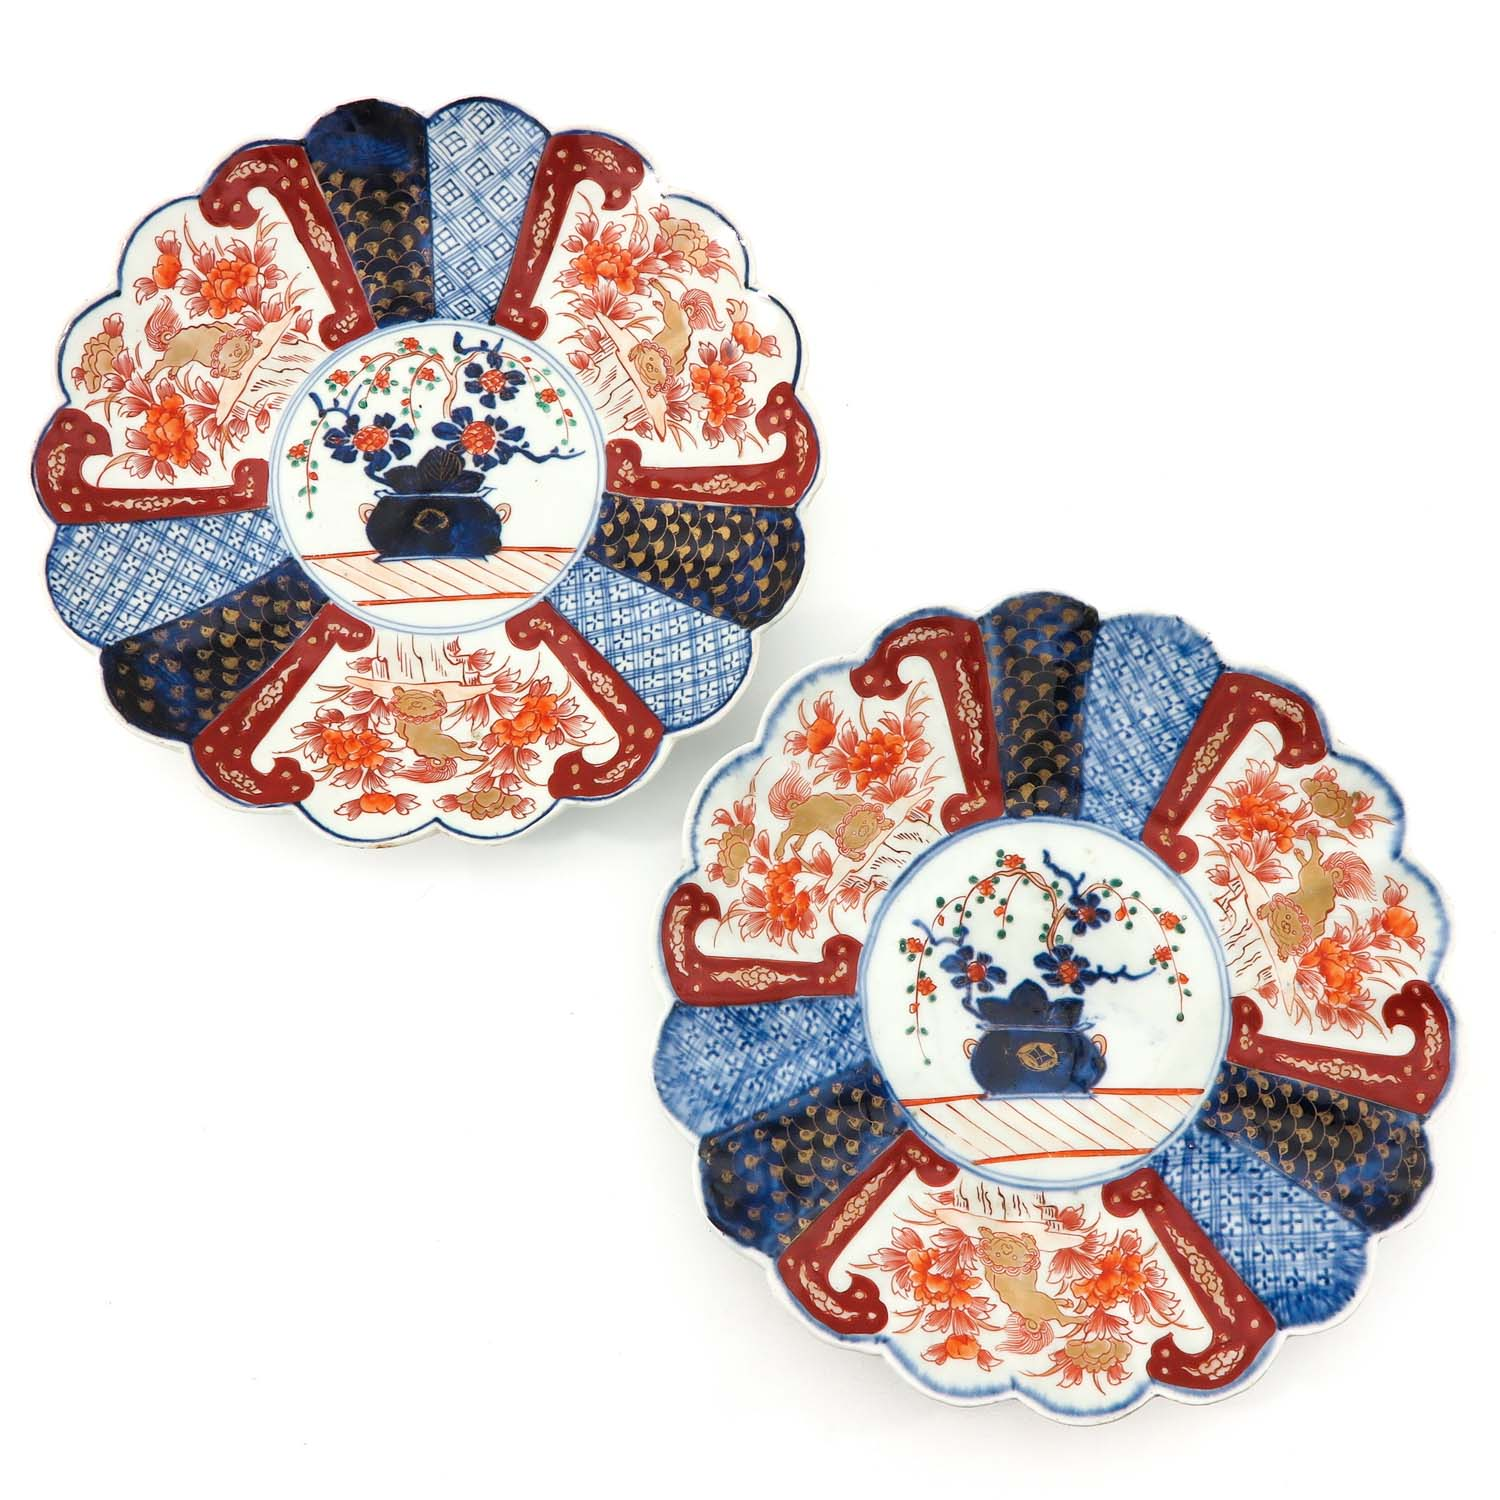 A Collection of 4 Imari Plates - Image 3 of 10